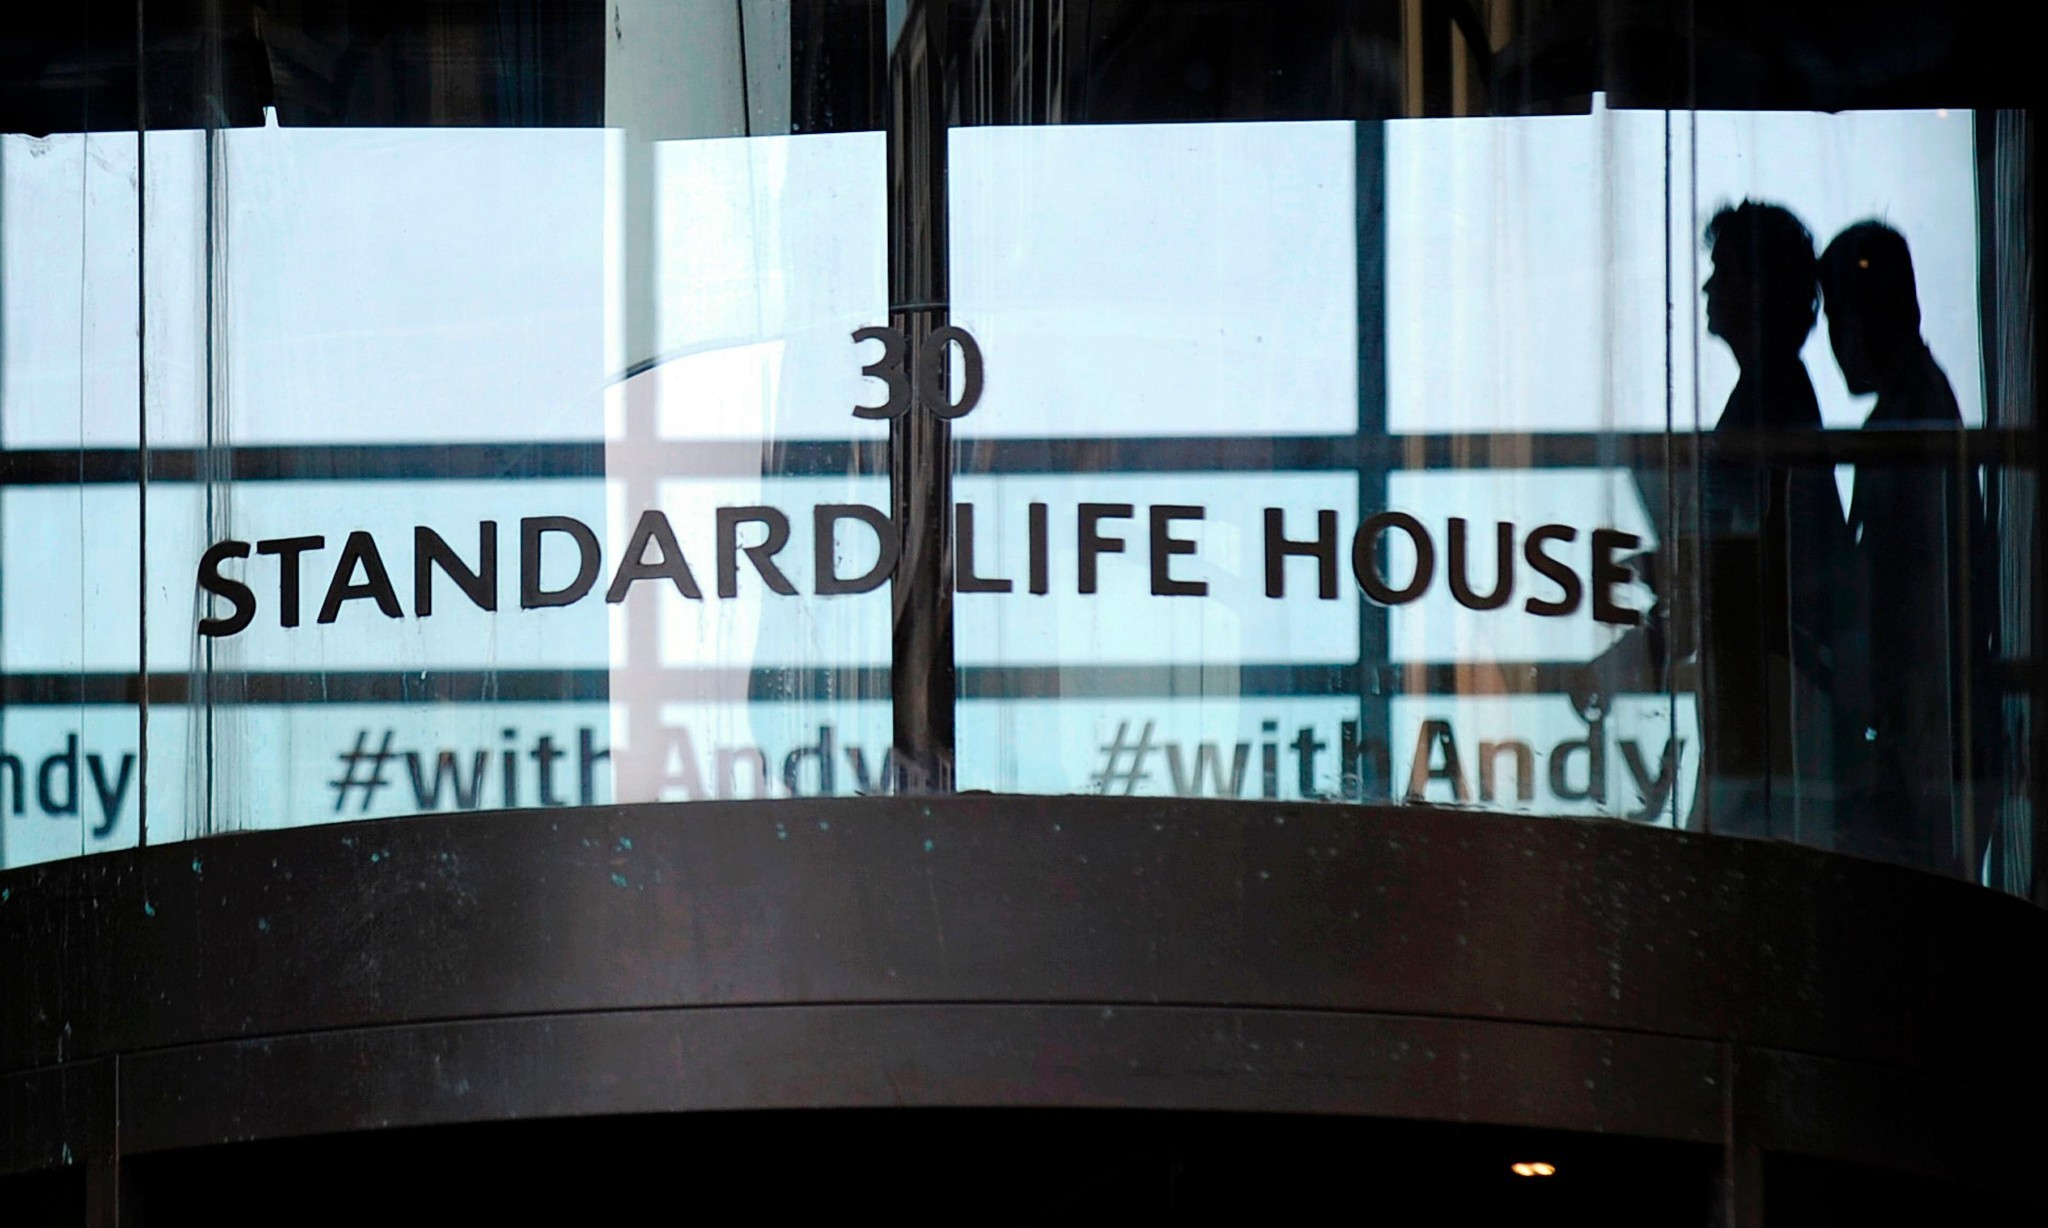 Job losses likely as Standard Life and Aberdeen reveal £11bn merger terms